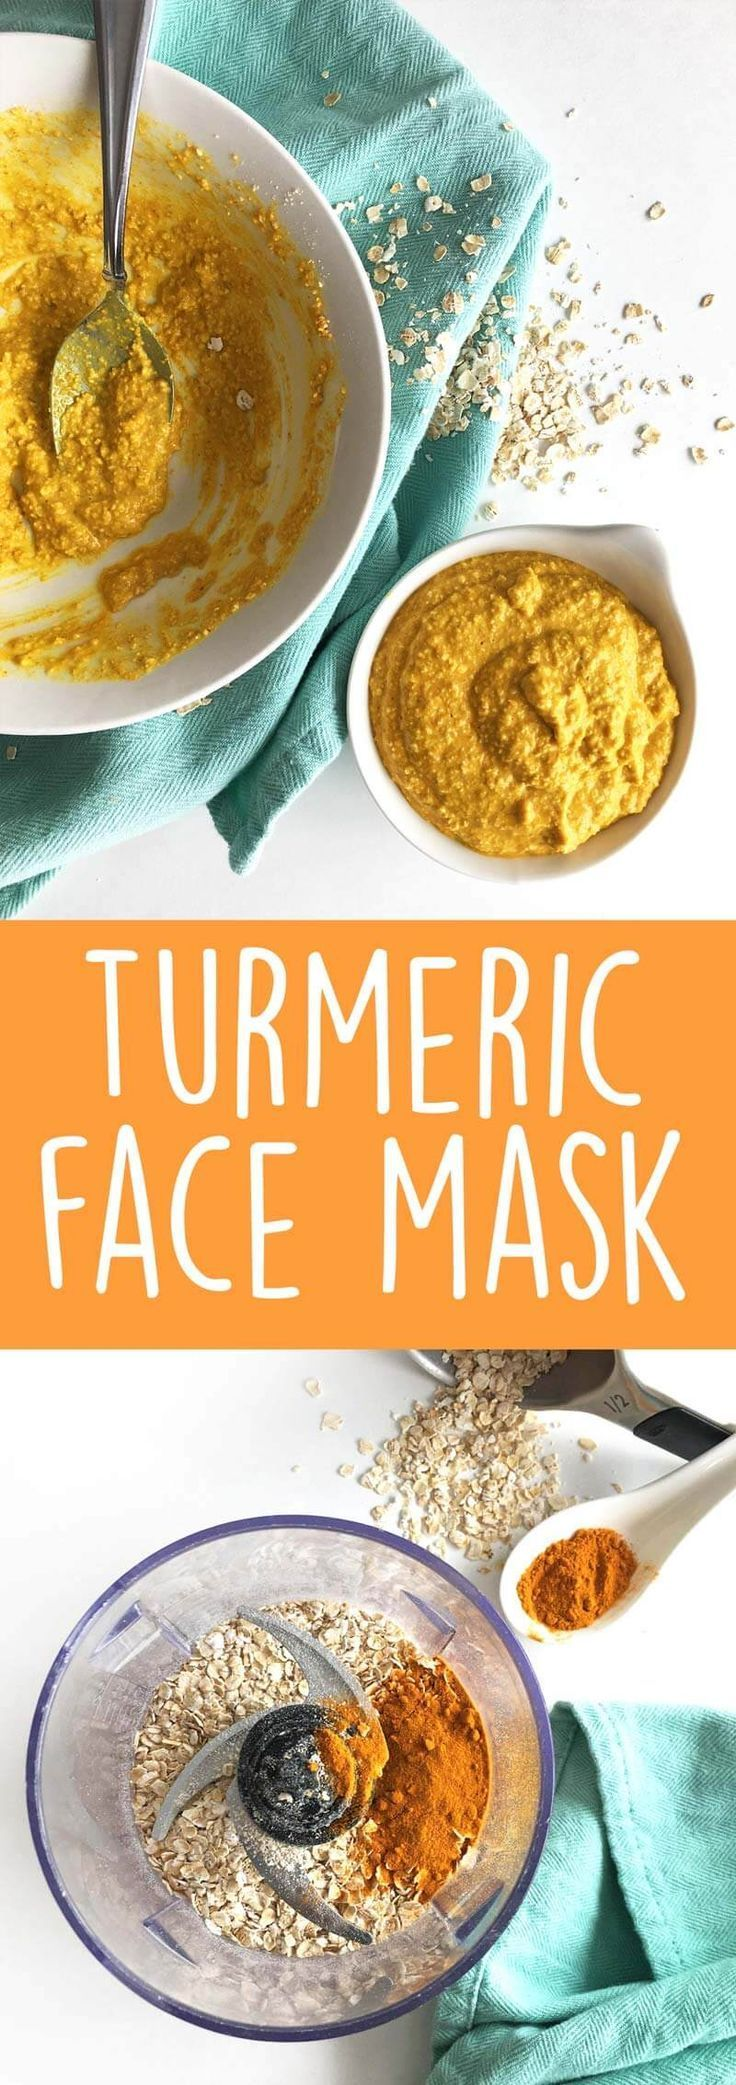 DIY Turmeric Face Mask: Bursting with amazing benefits, this homemade face mask will leave your skin moisturized. It also treats acne and reduces the appearance of scars and dark spots. | http://thecrunchychronicles.com | Face Mask for Acne